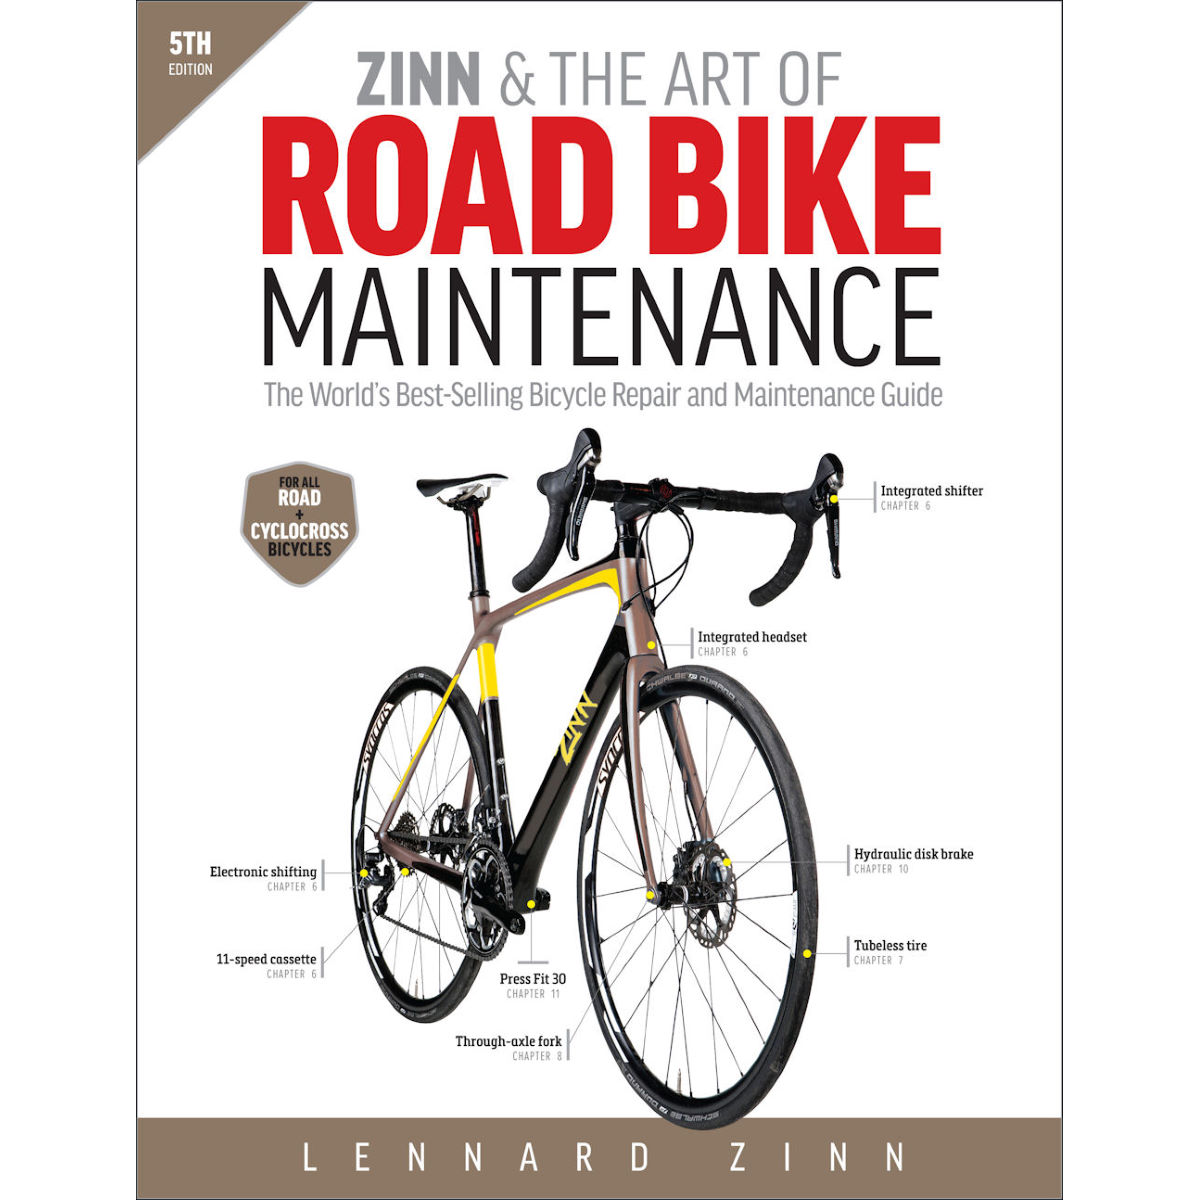 Livre Cordee « Zinn and The Art Of Road Bike Maintenance > (en anglais)